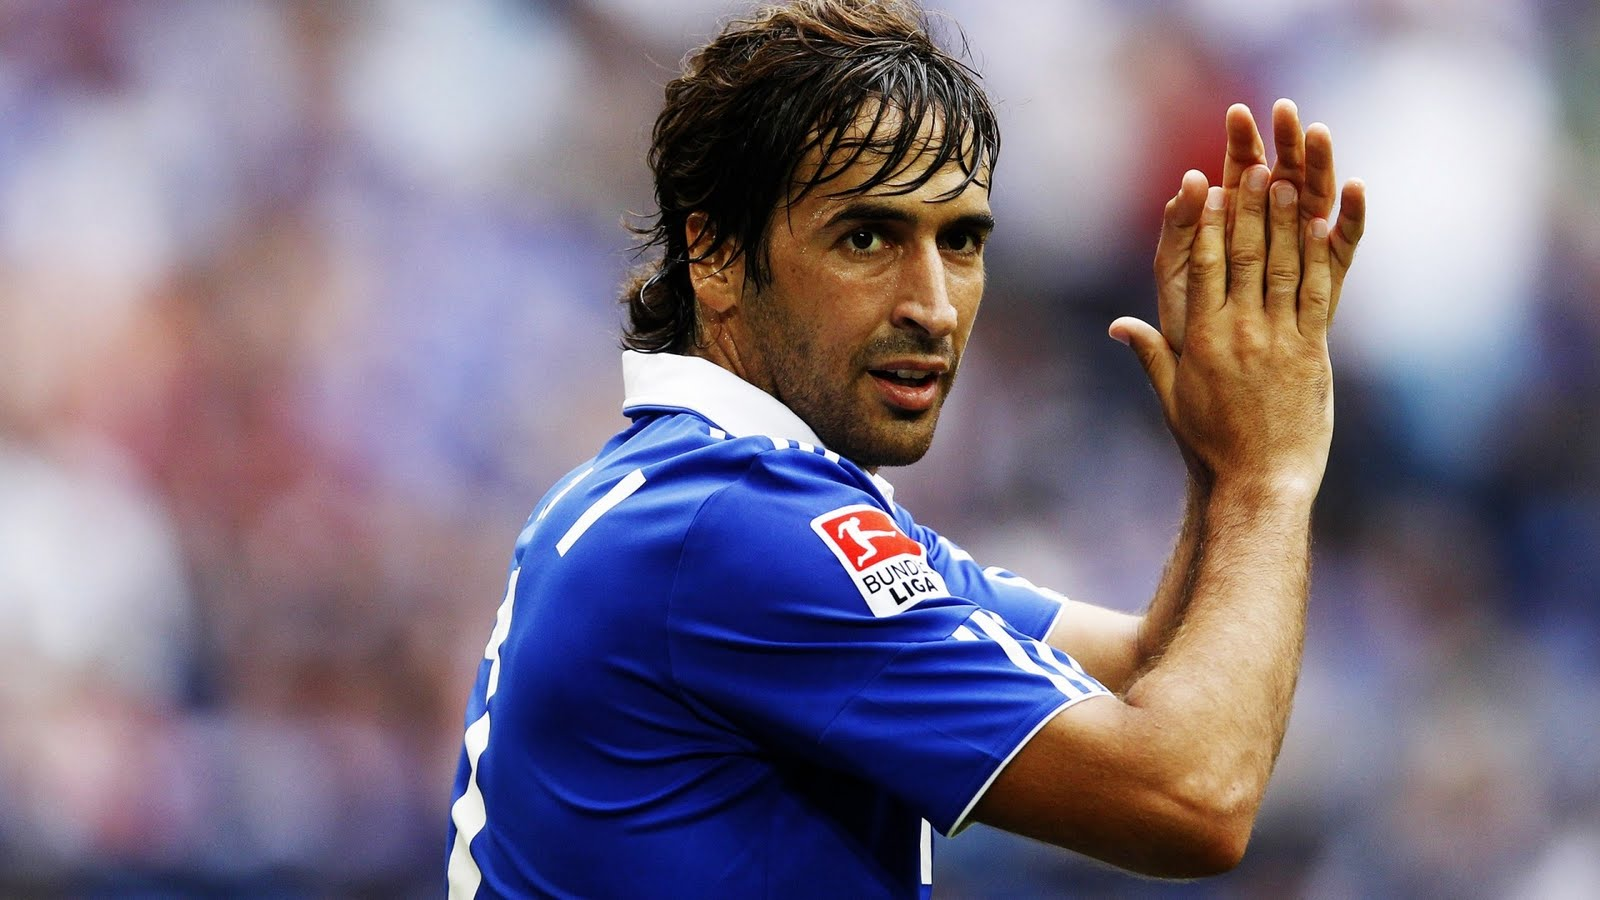 FC Schalke Made a Formal Offer to Renew The Contract of Raul